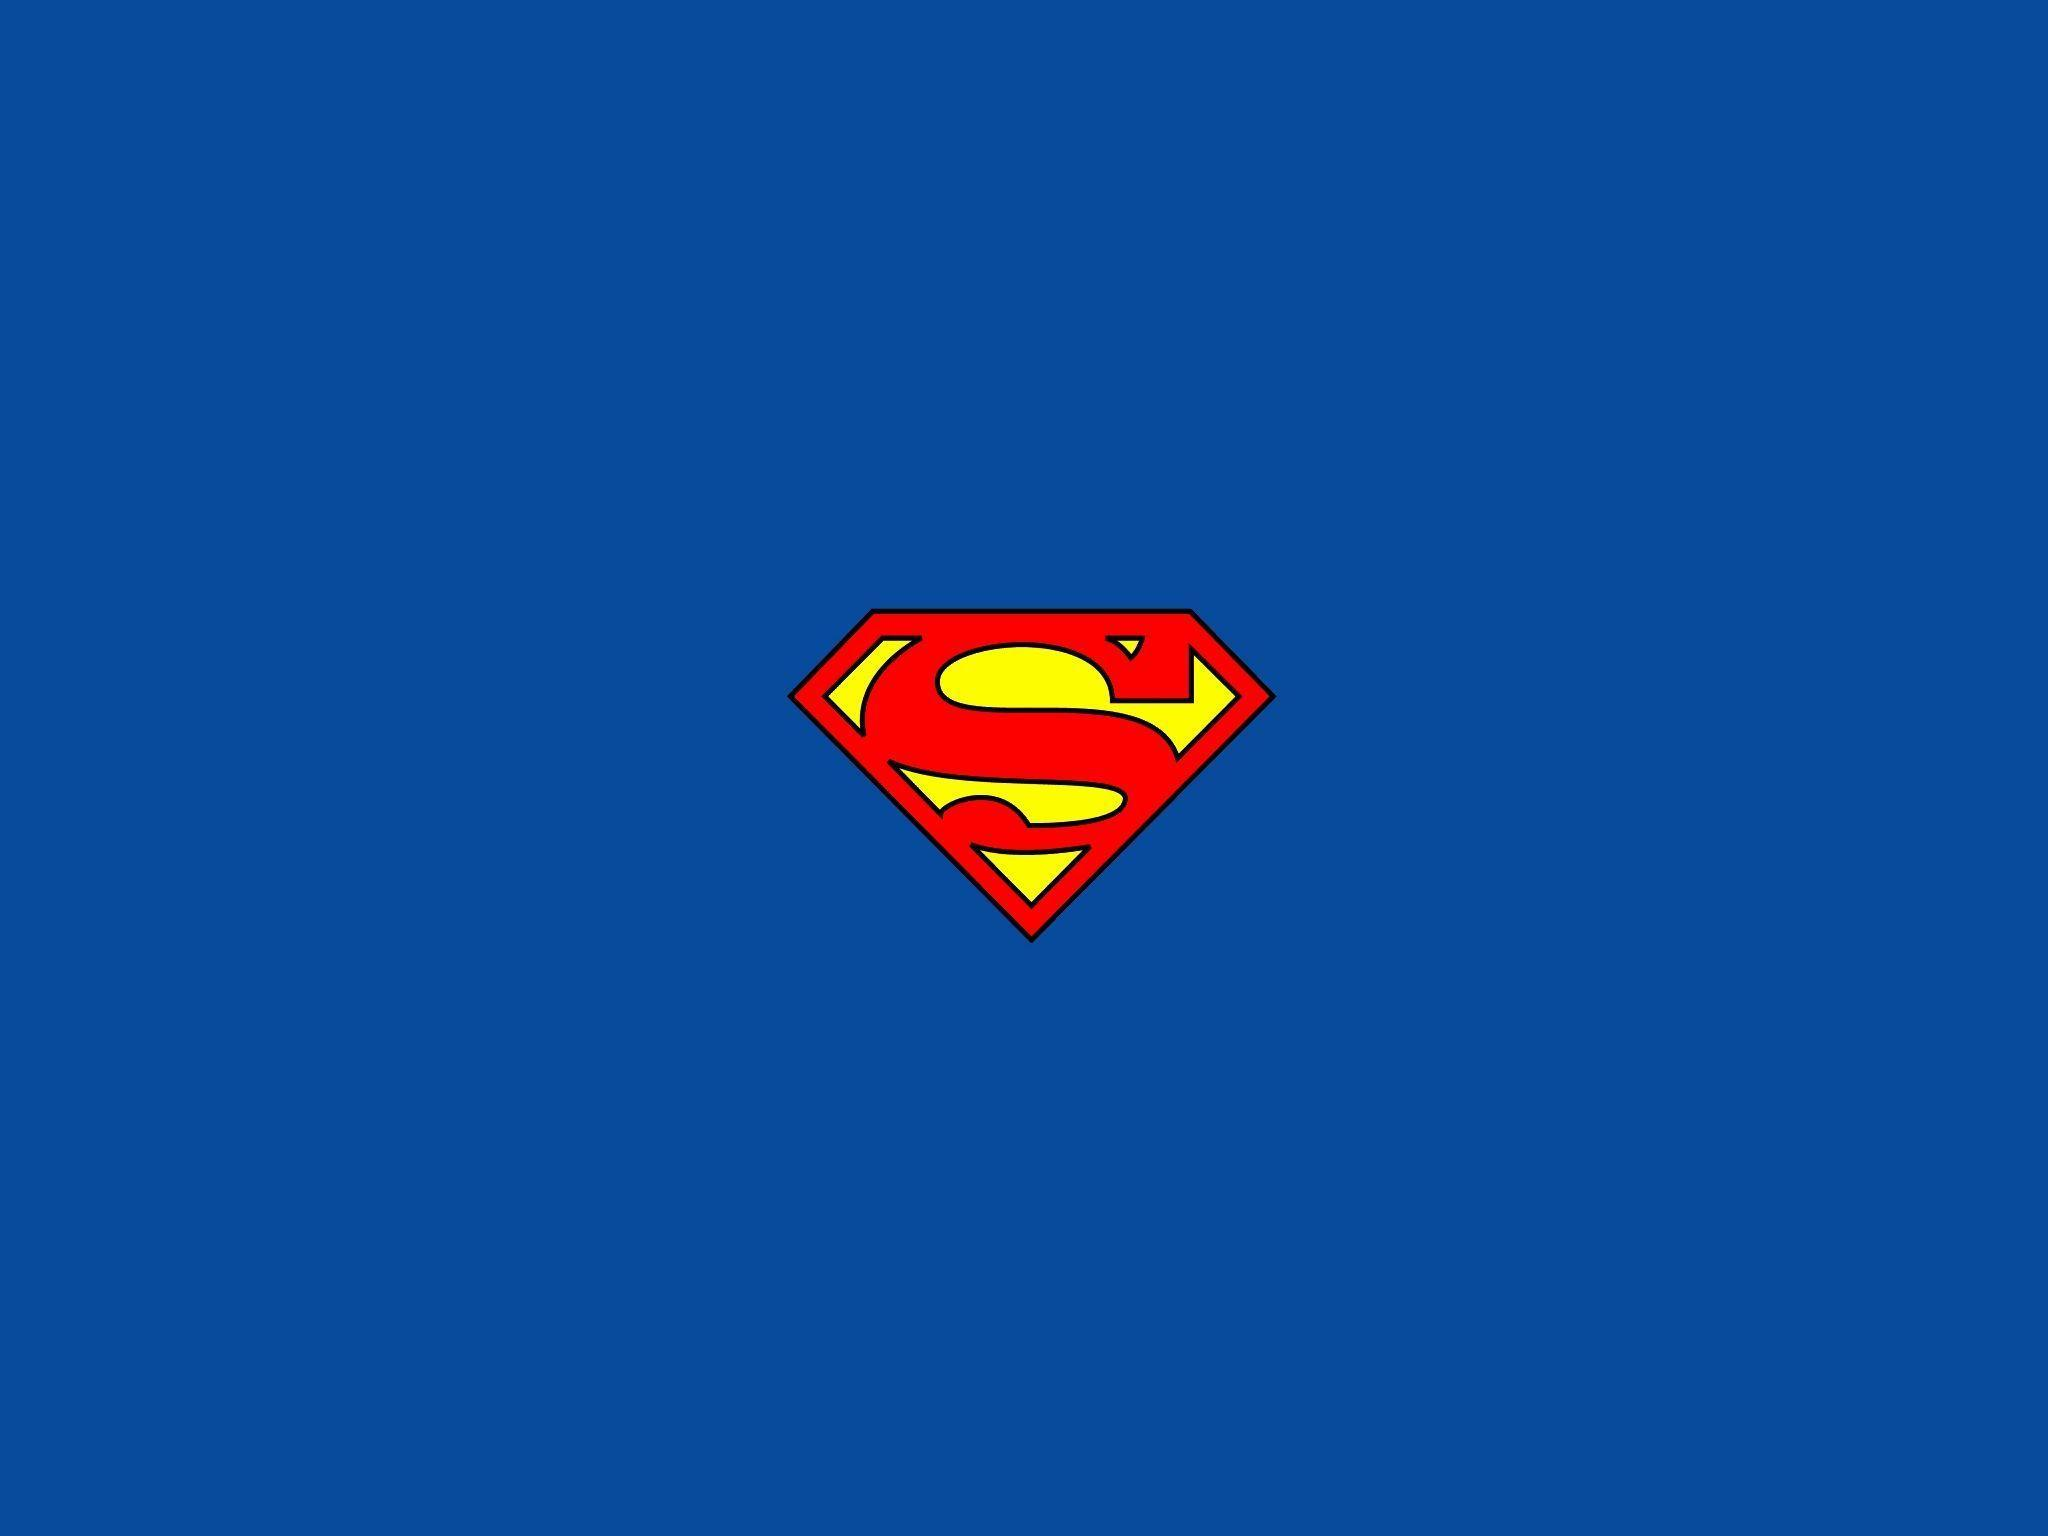 superman logo free wallpaper - photo #20